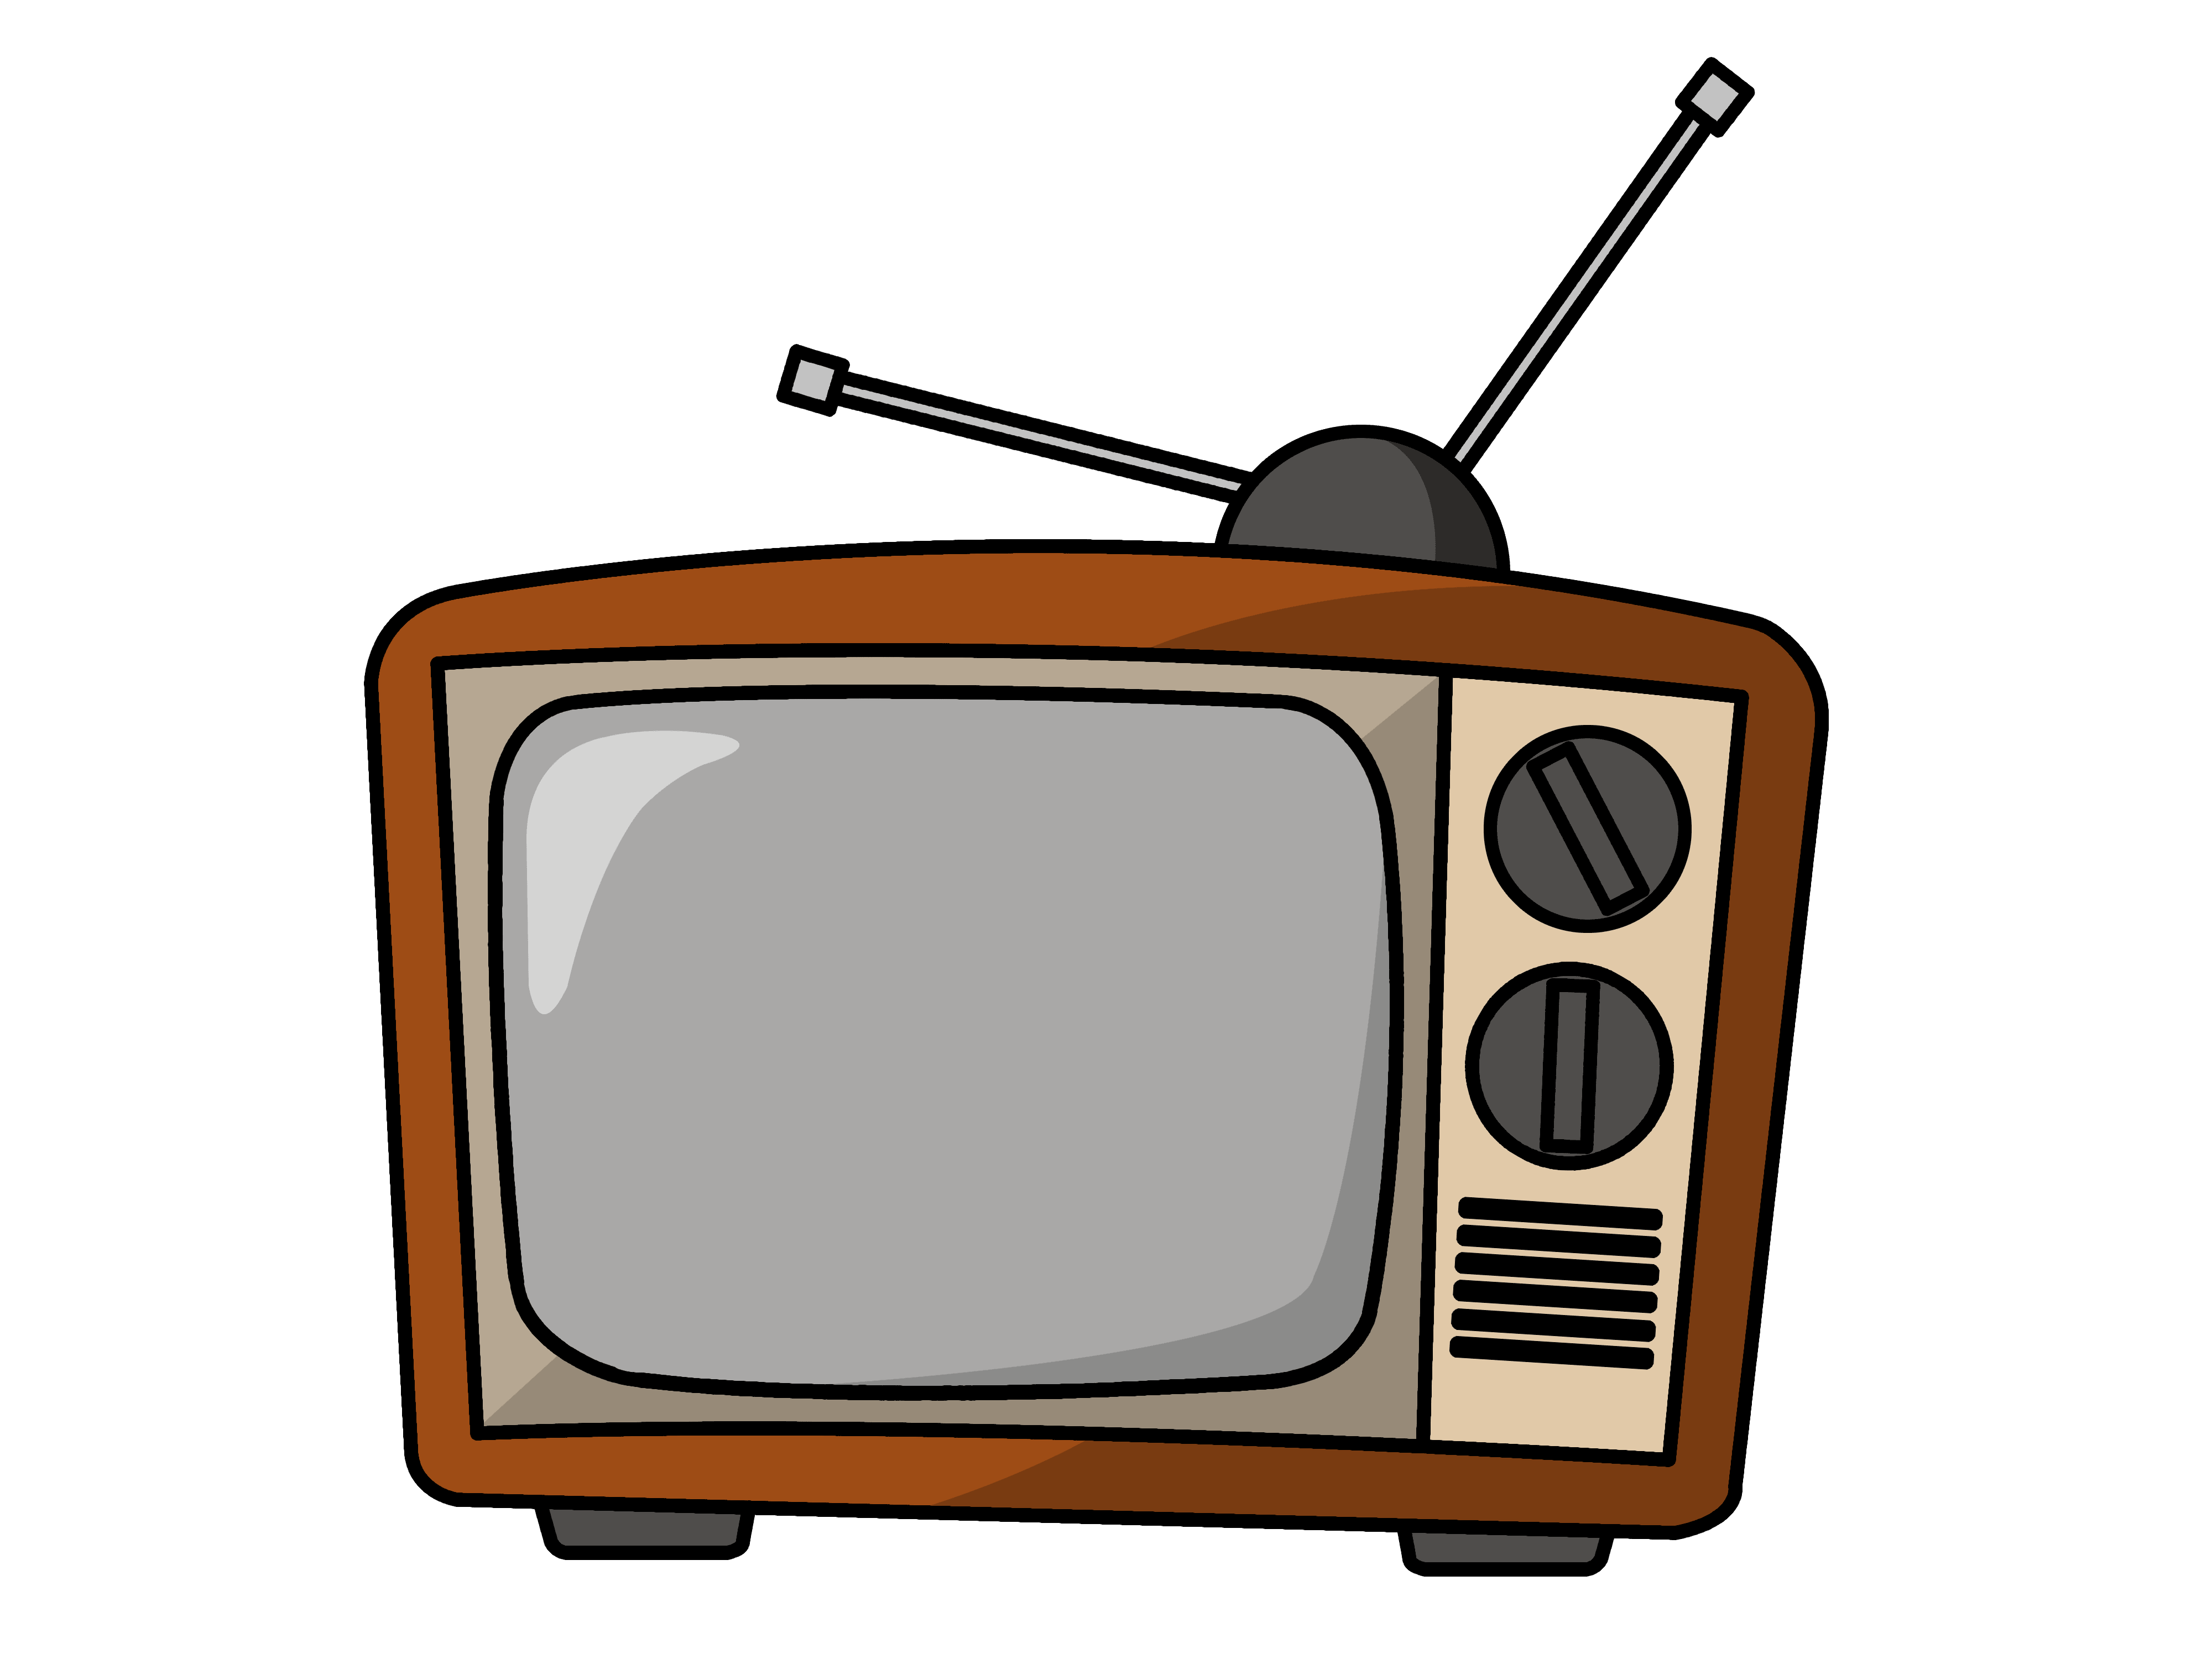 Baseball game on tv clipart image Take time to watch a documentary | DigitalWire360 | Digital ... image